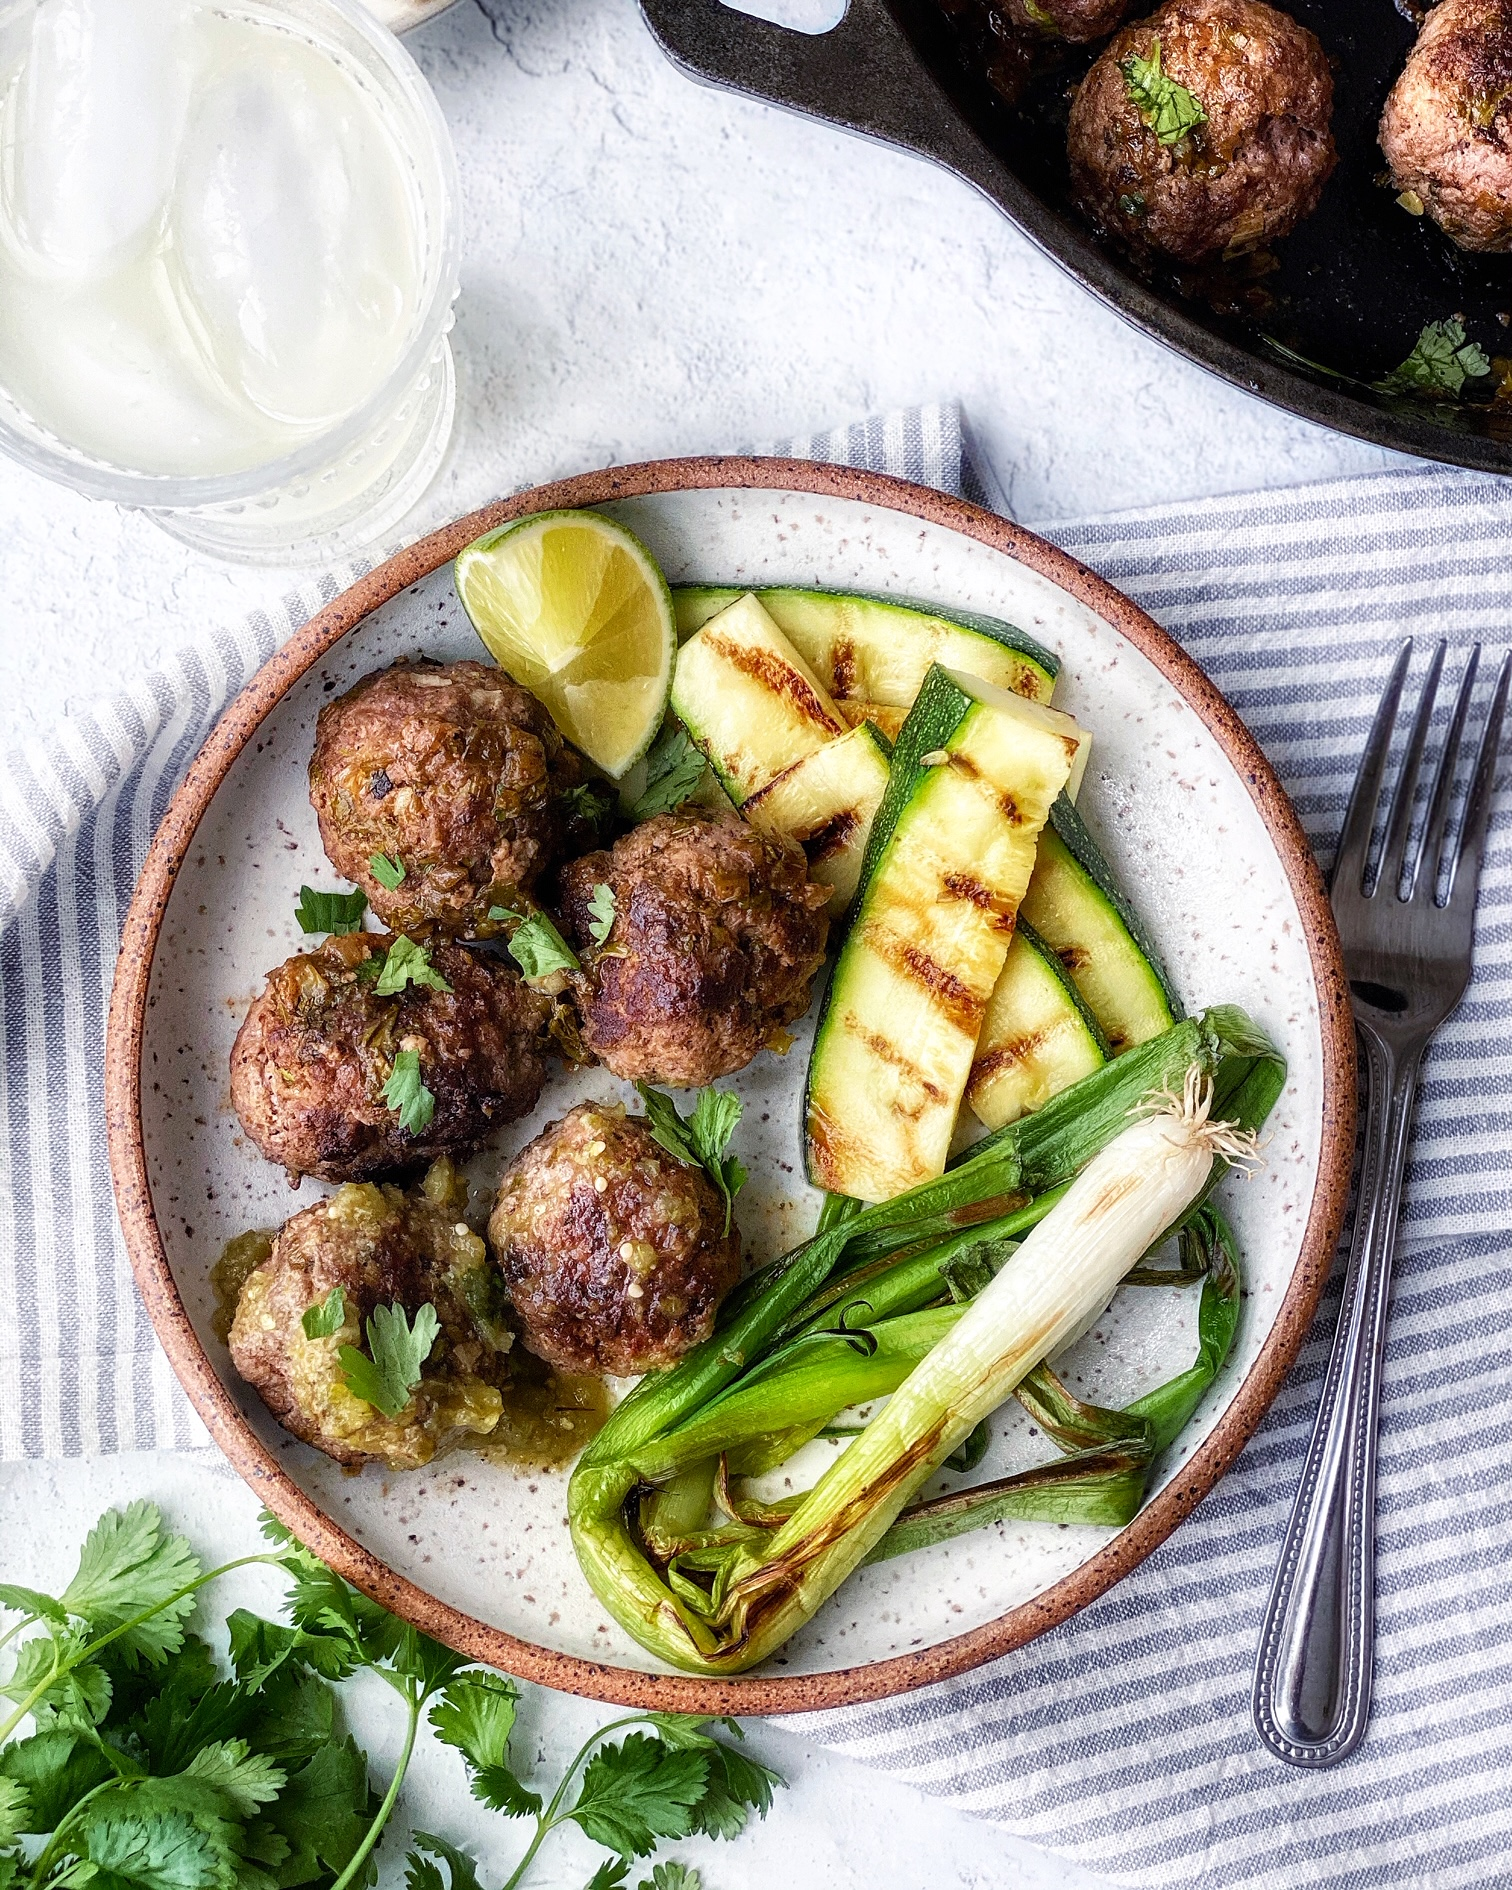 Carne asada meatballs, grilled zucchini, grilled green onions on a plate